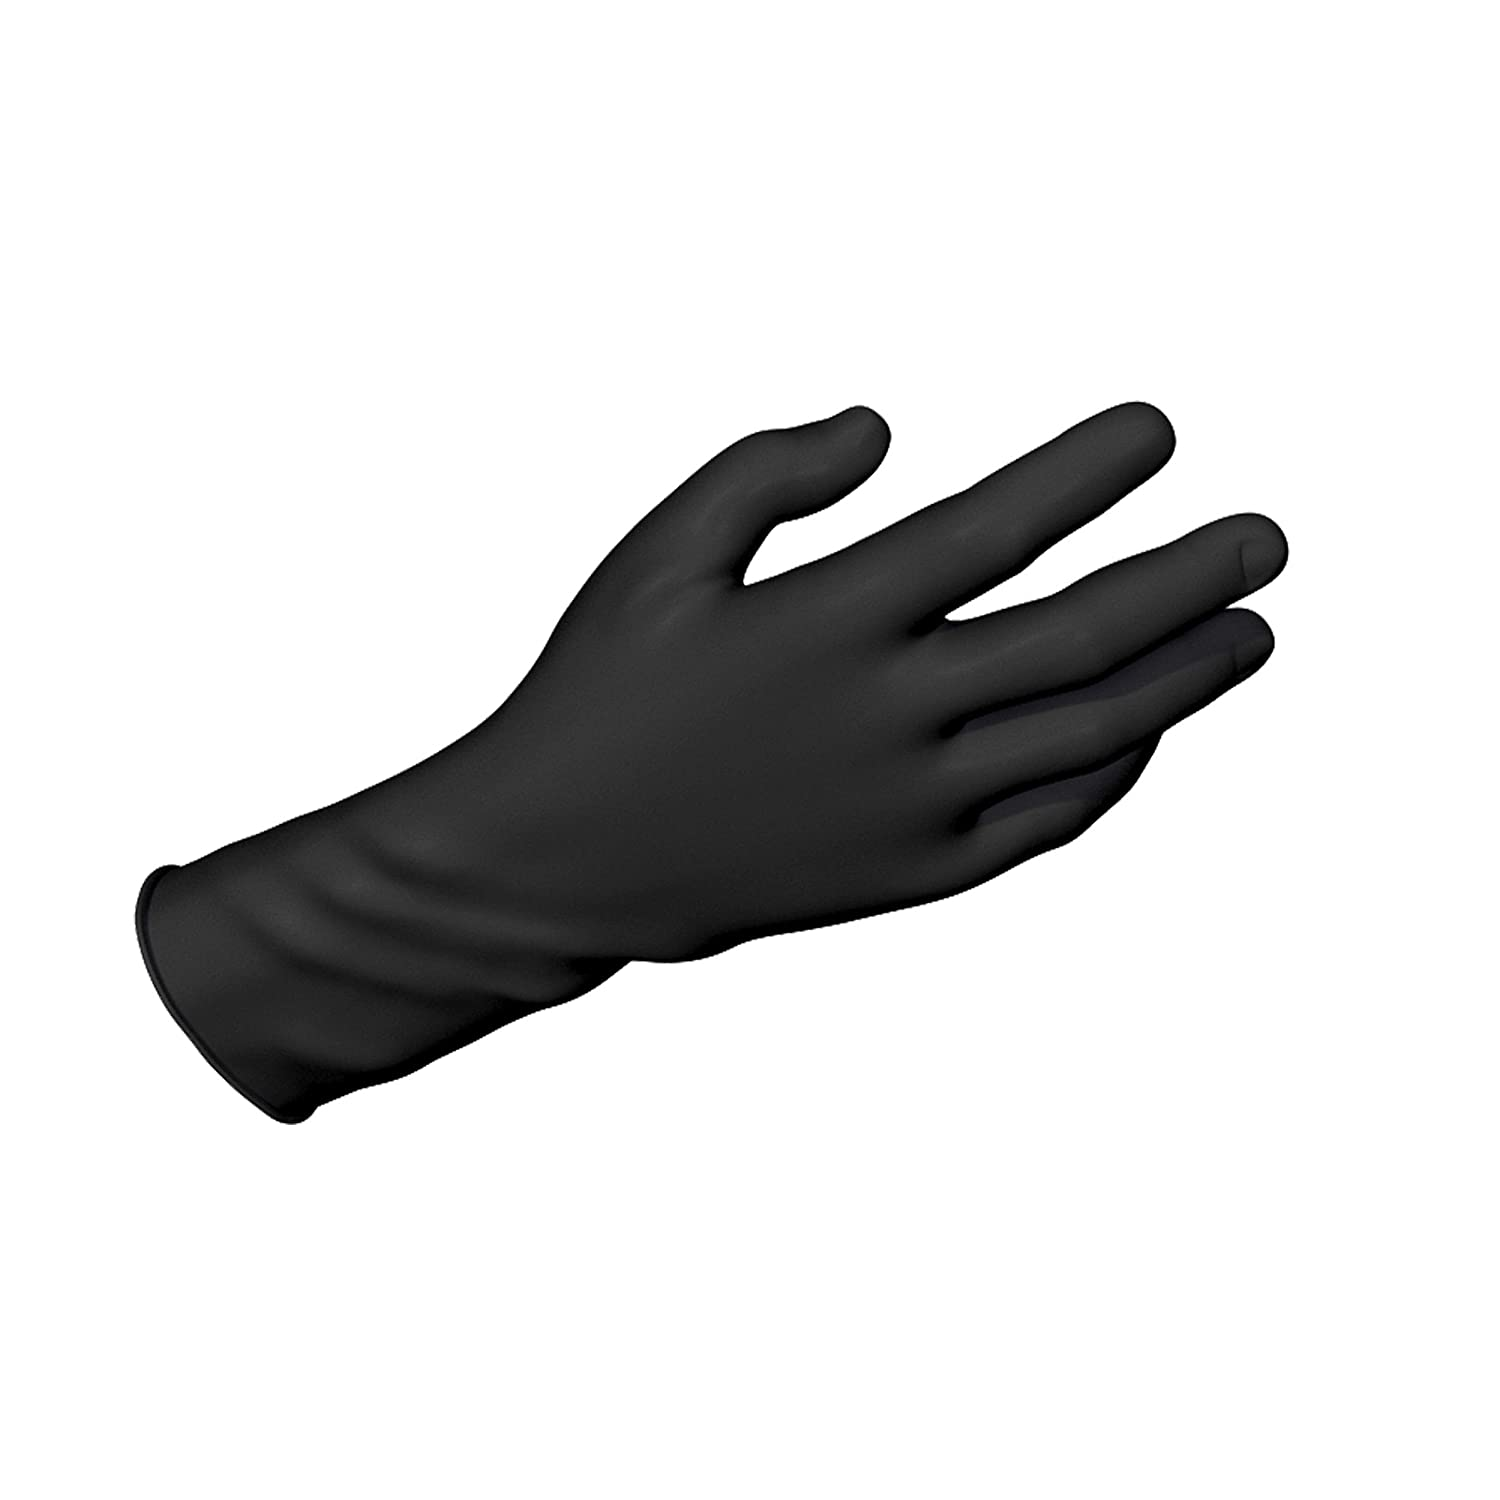 Dynarex Safe-Touch Black New sales Disposable Gloves Nitrile Bombing free shipping Exam Powder-